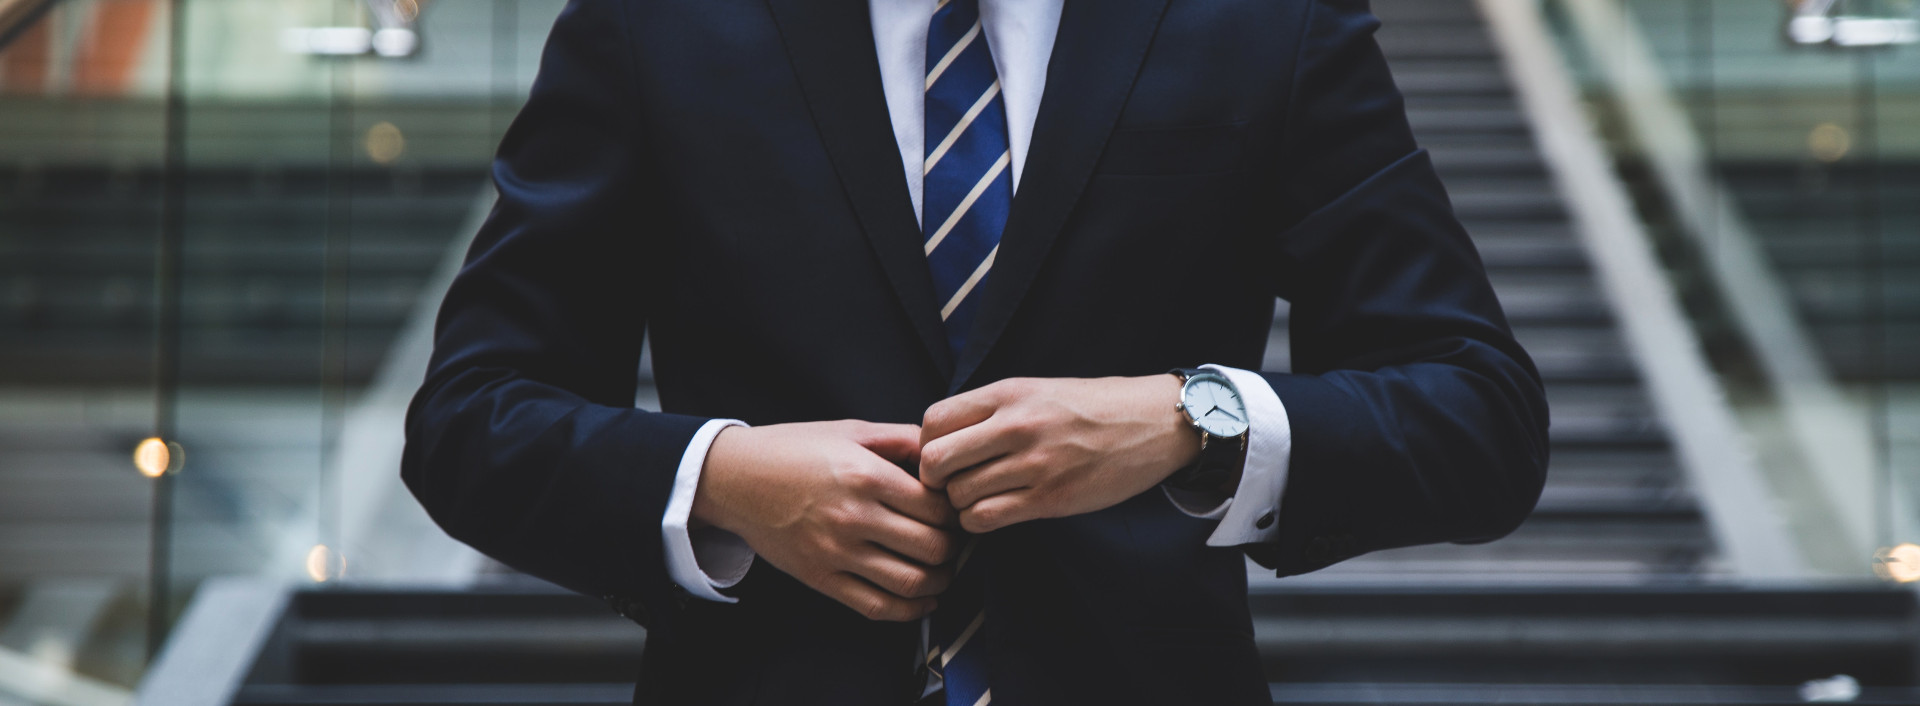 Job Titles in English: Close up image of a man buttoning a suit jacket.